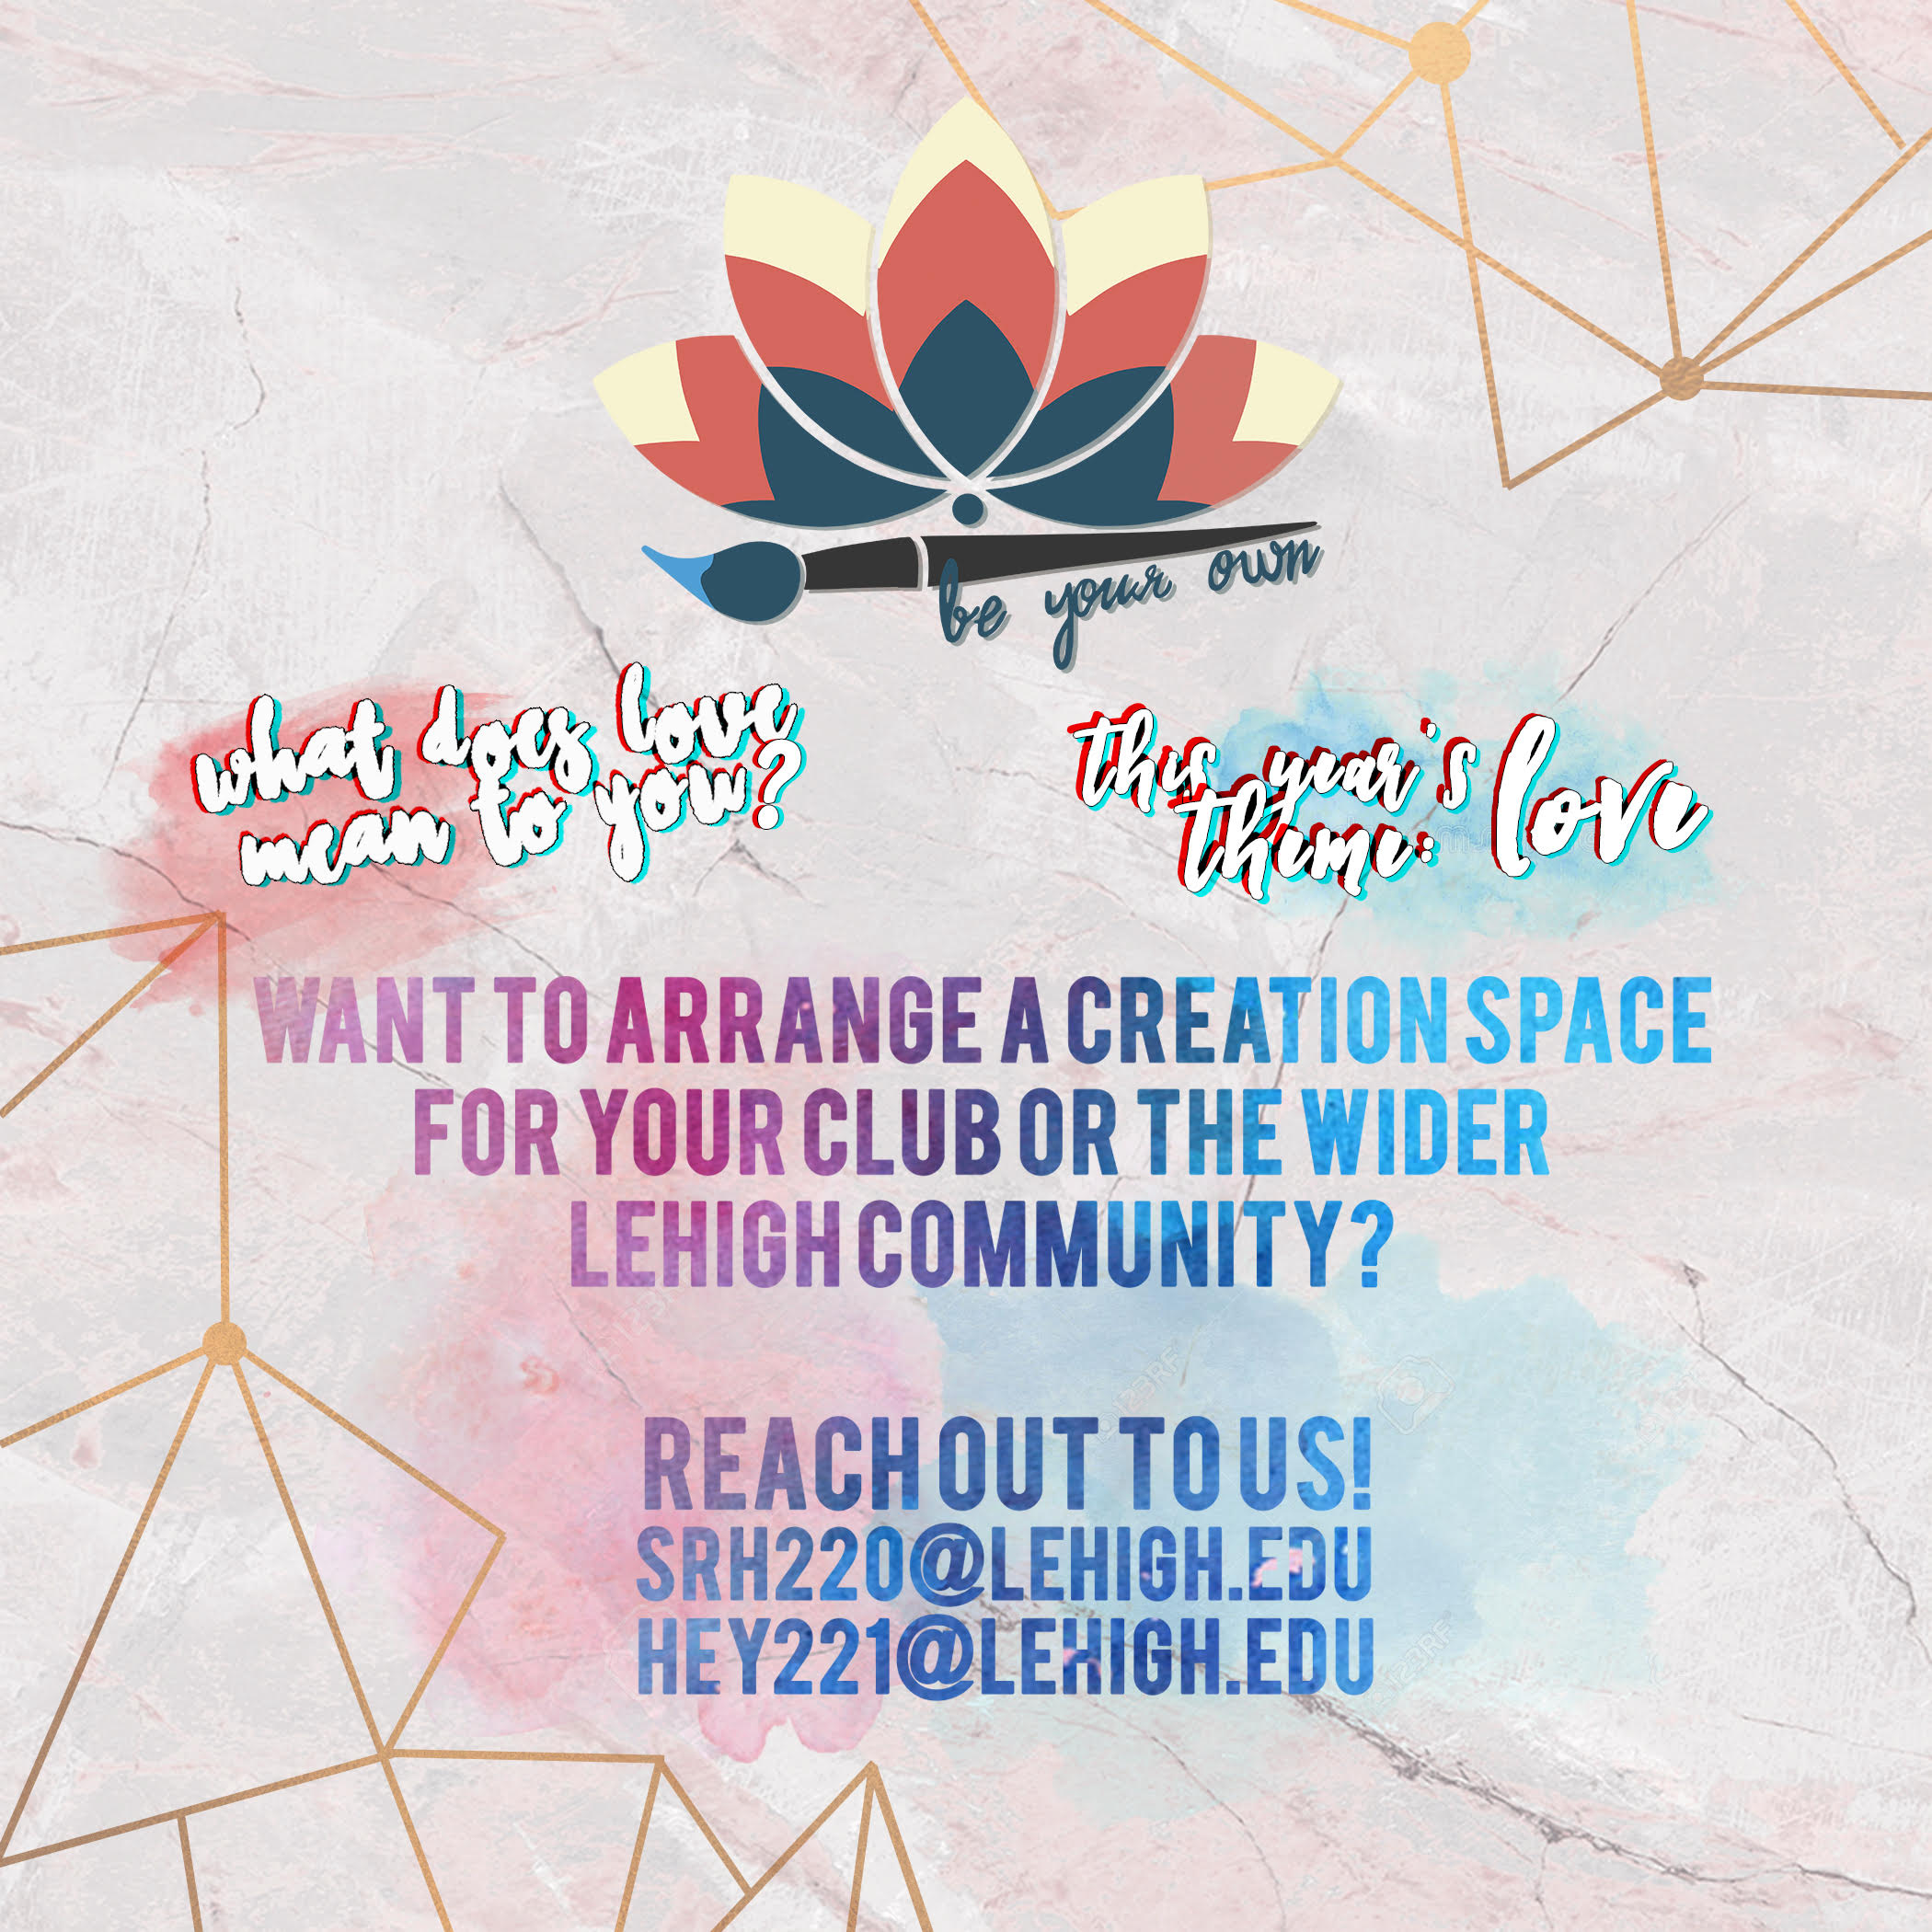 Contact srh220@lehigh.edu to set up a creation space for your club or department at Lehigh!